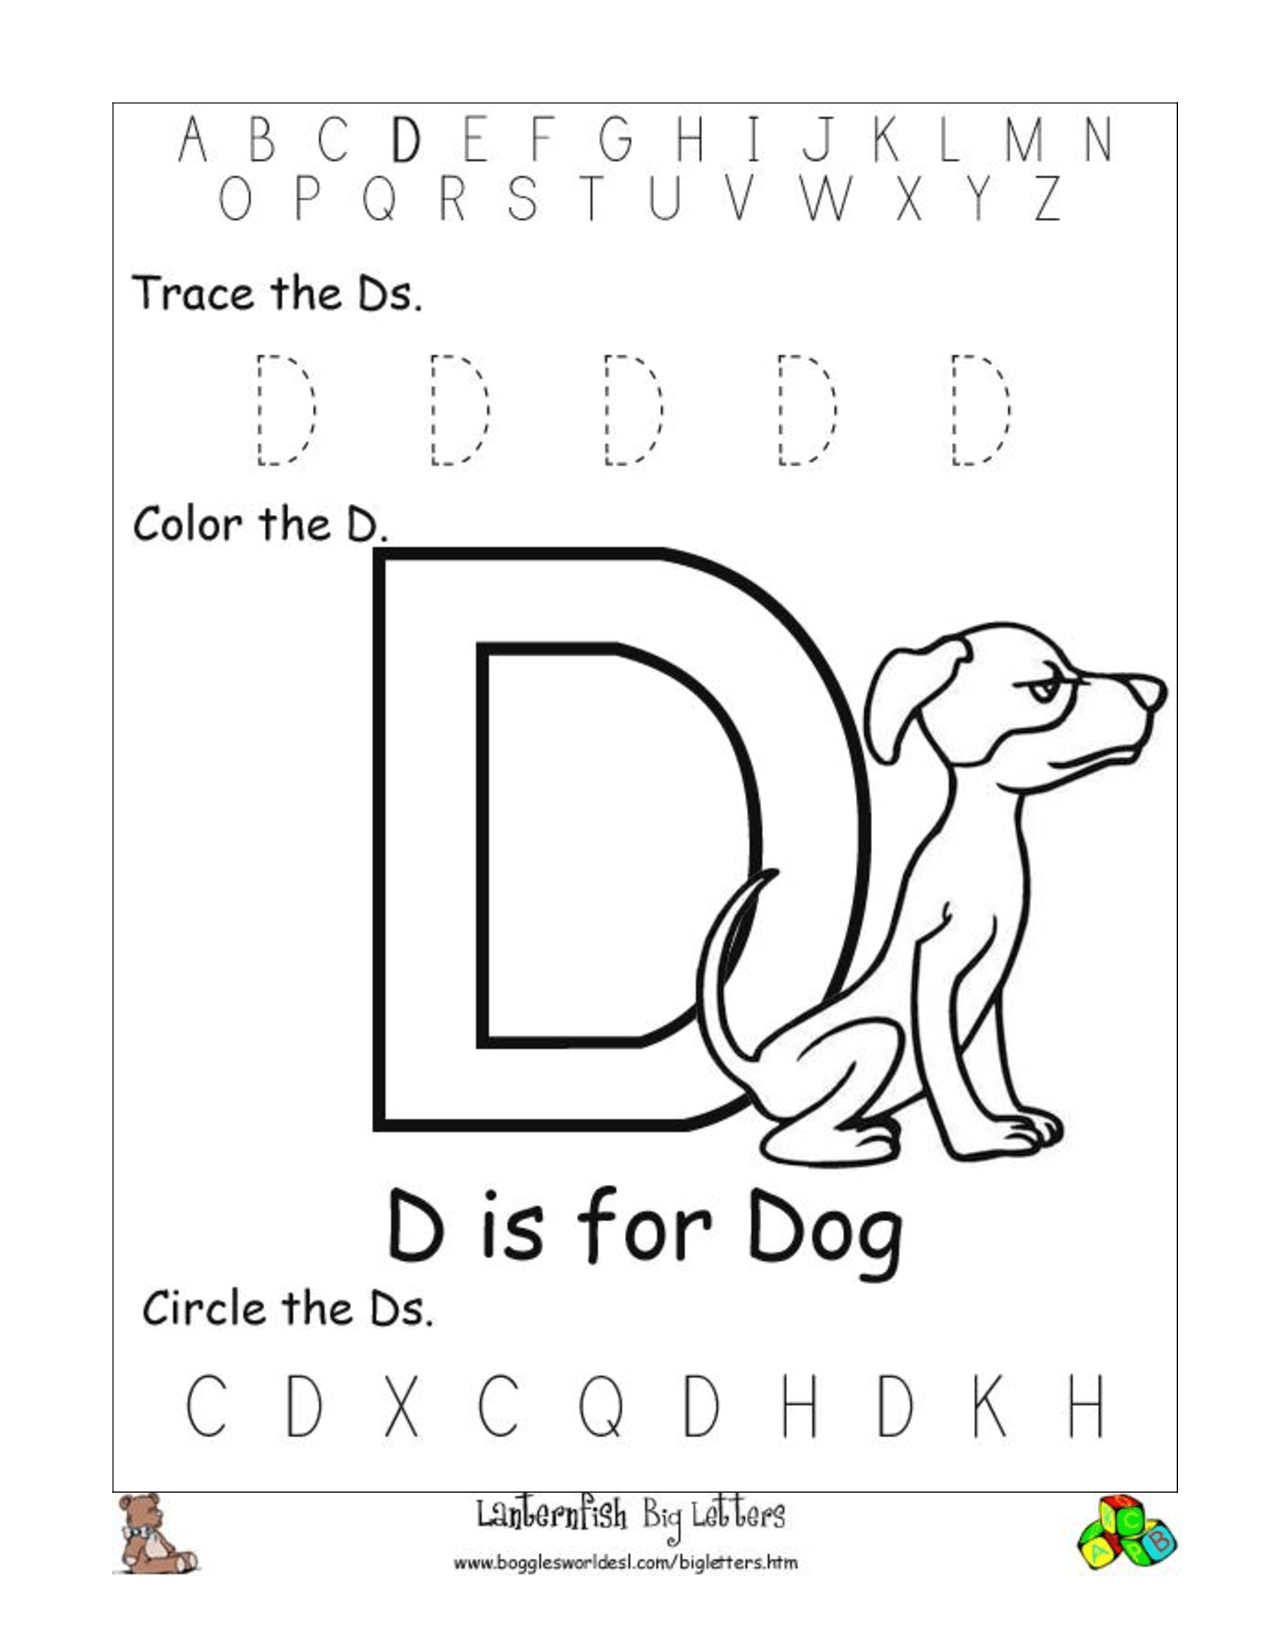 Free Printable Letter D Worksheets | Printable Worksheets regarding Letter D Worksheets Sparklebox